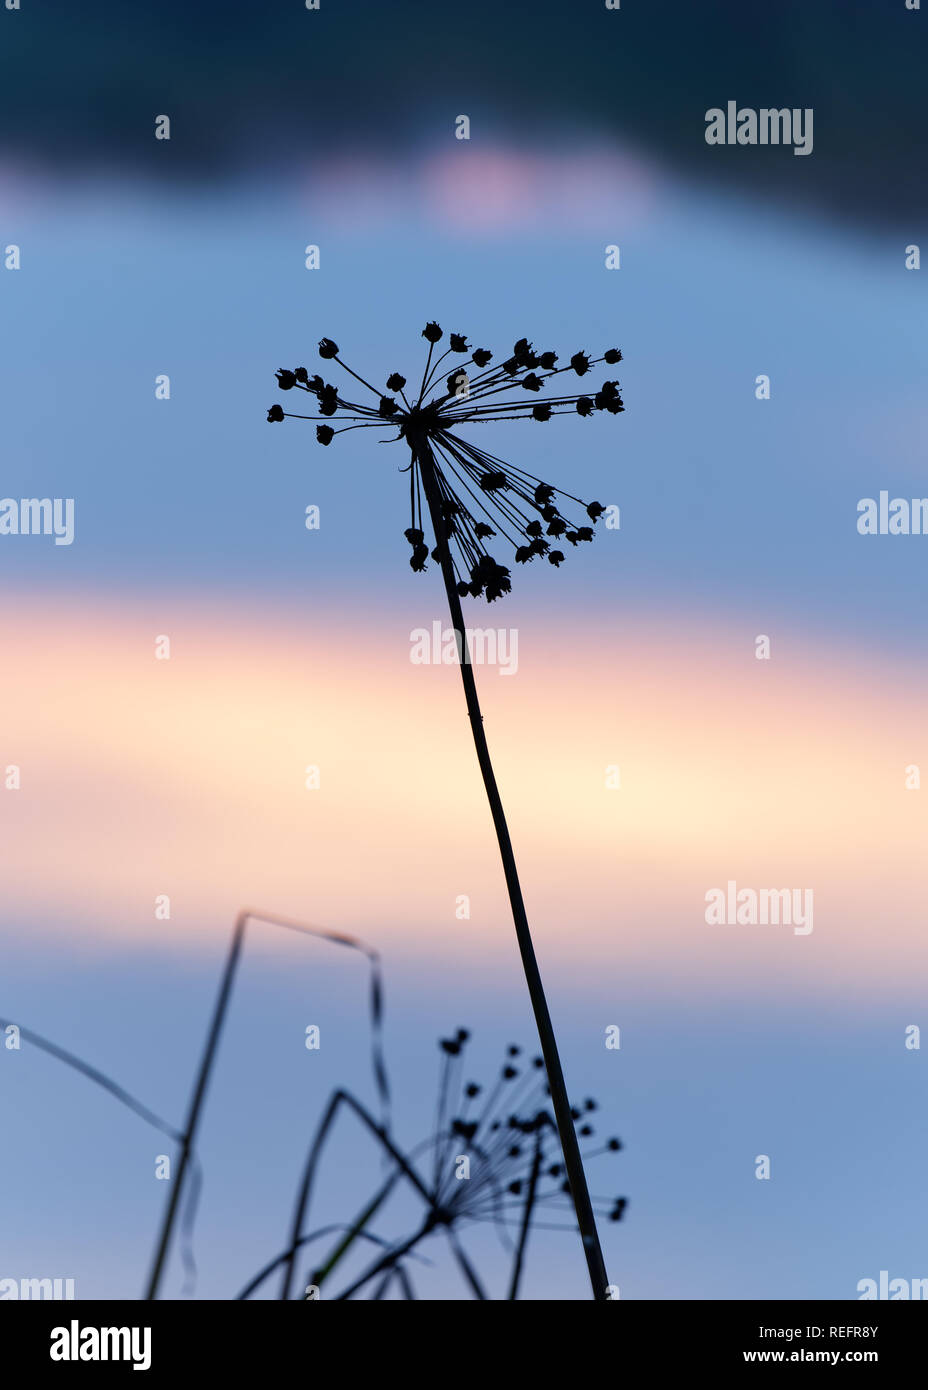 Silhouette of a panicle in narrow sharpness zone in the evening light at the blue hour, detail view, close-up, as background the in the water mirrored - Stock Image